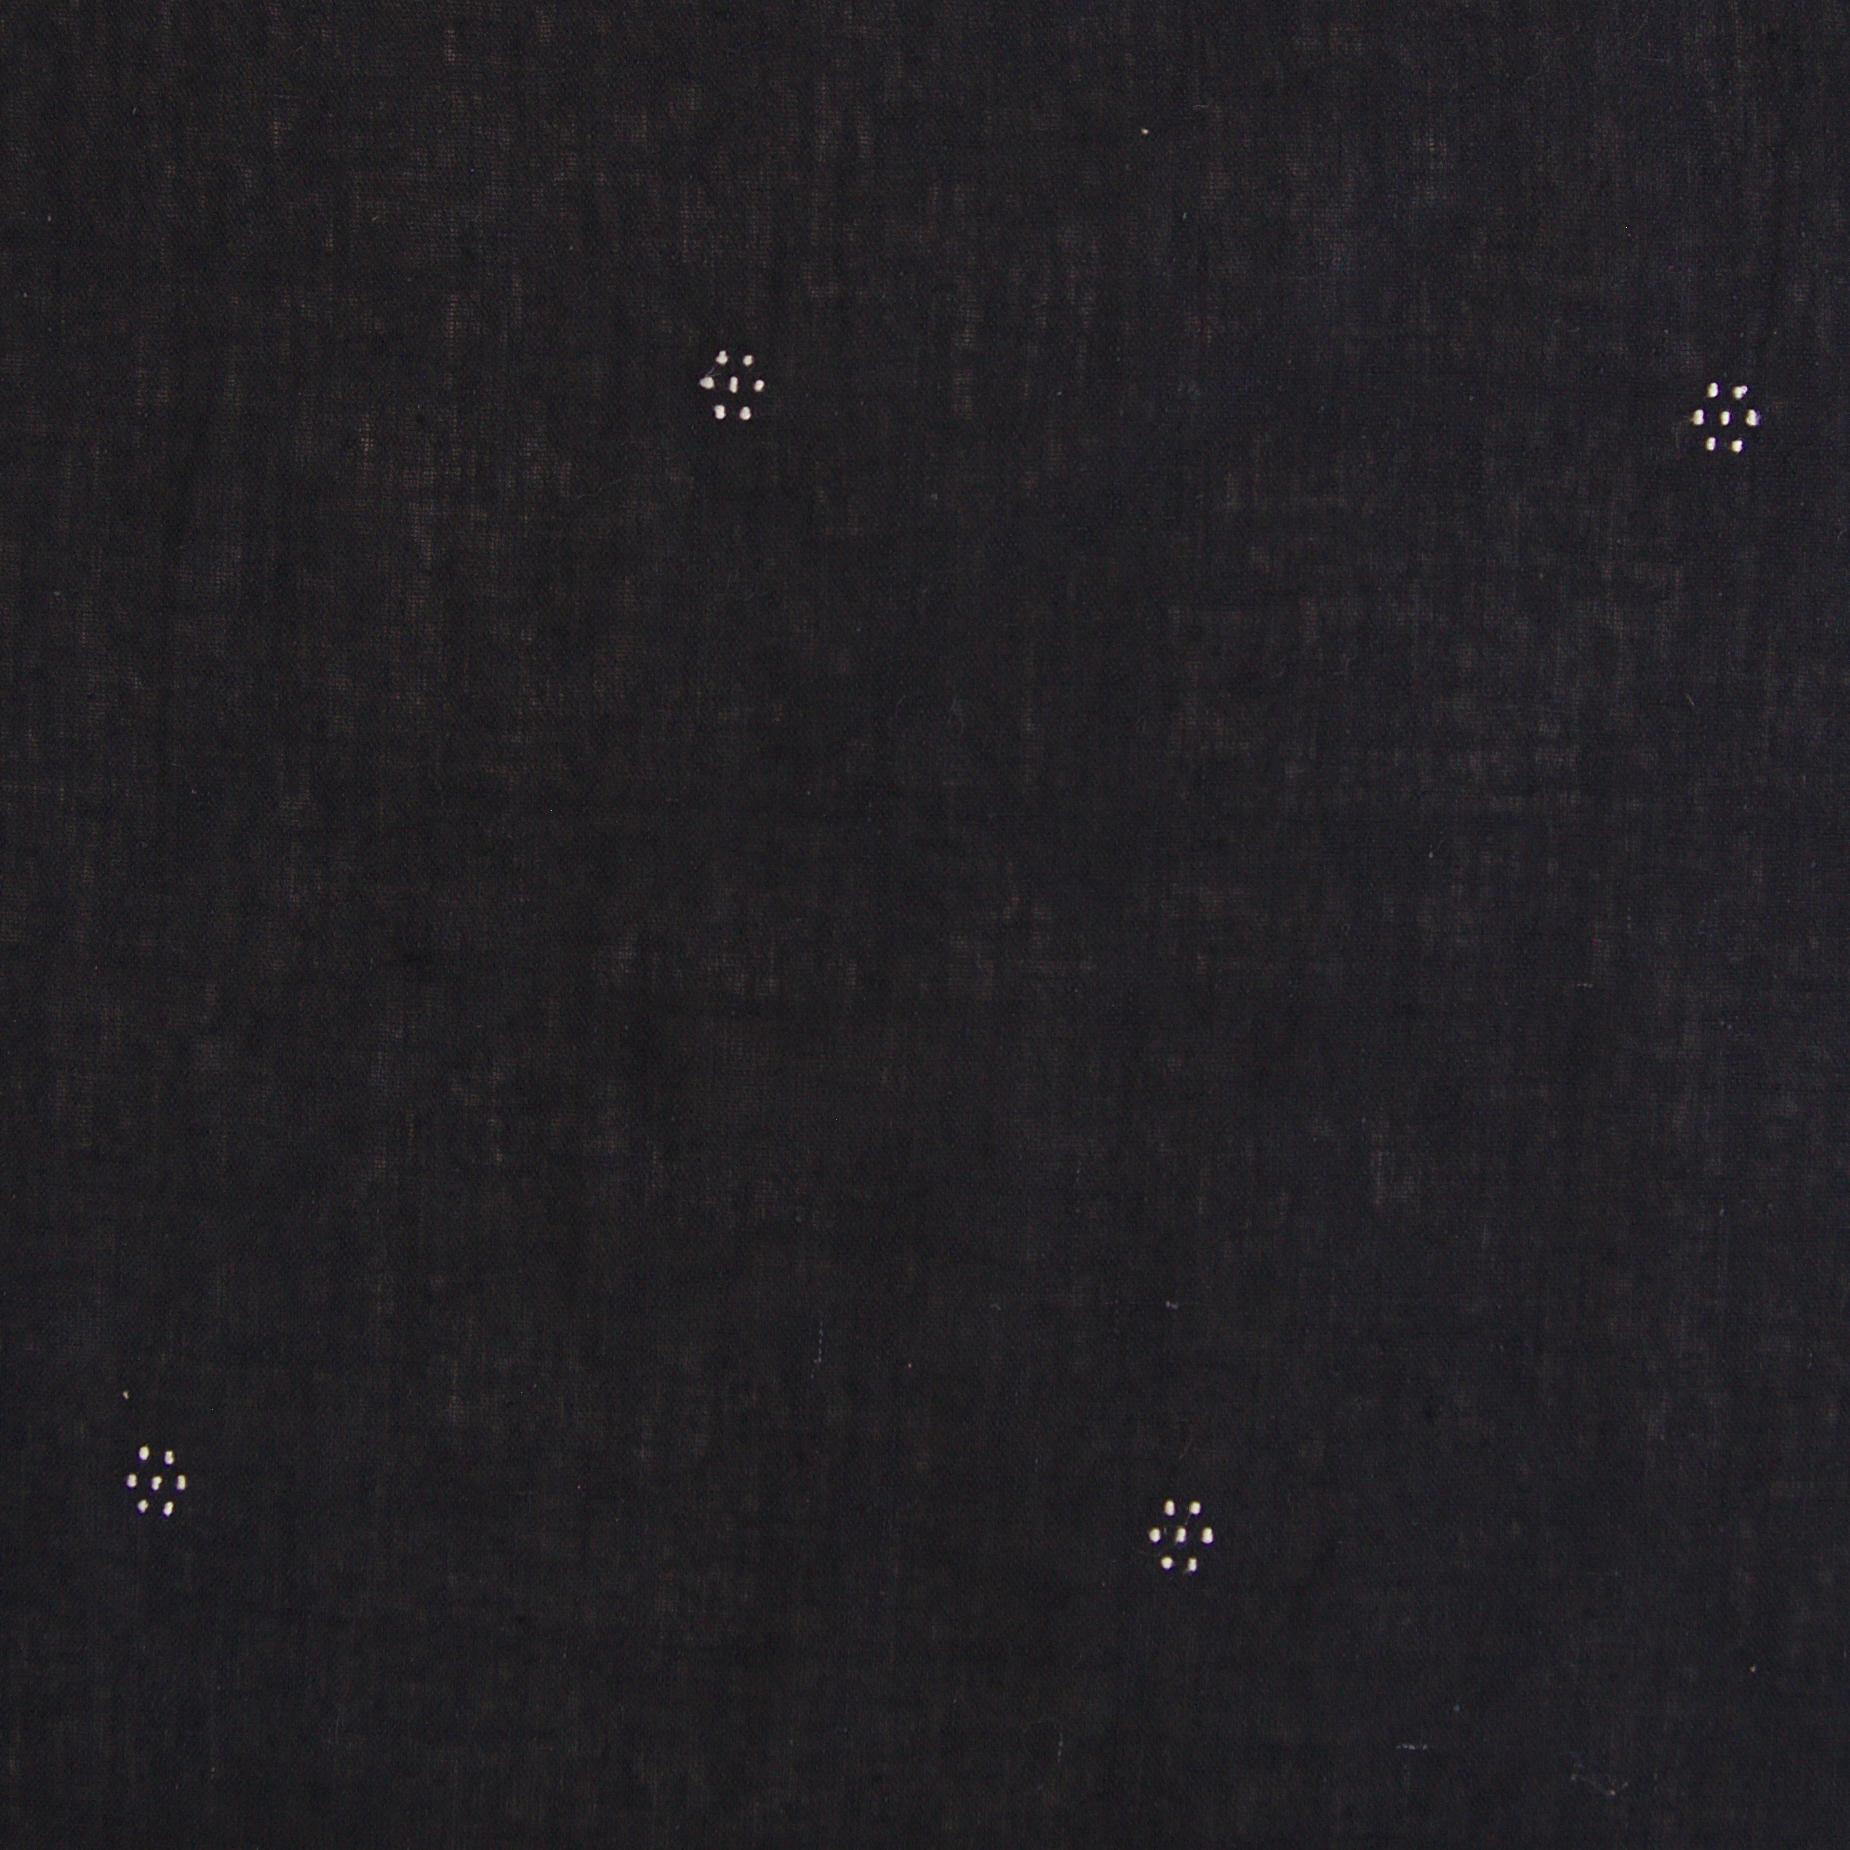 Handloom-Woven Organic Kala Cotton Fabric from India - Plain 1 by 1 Weave With Extra Knotted Weft - Tangalia Design - Black Reactive Dye - Flat